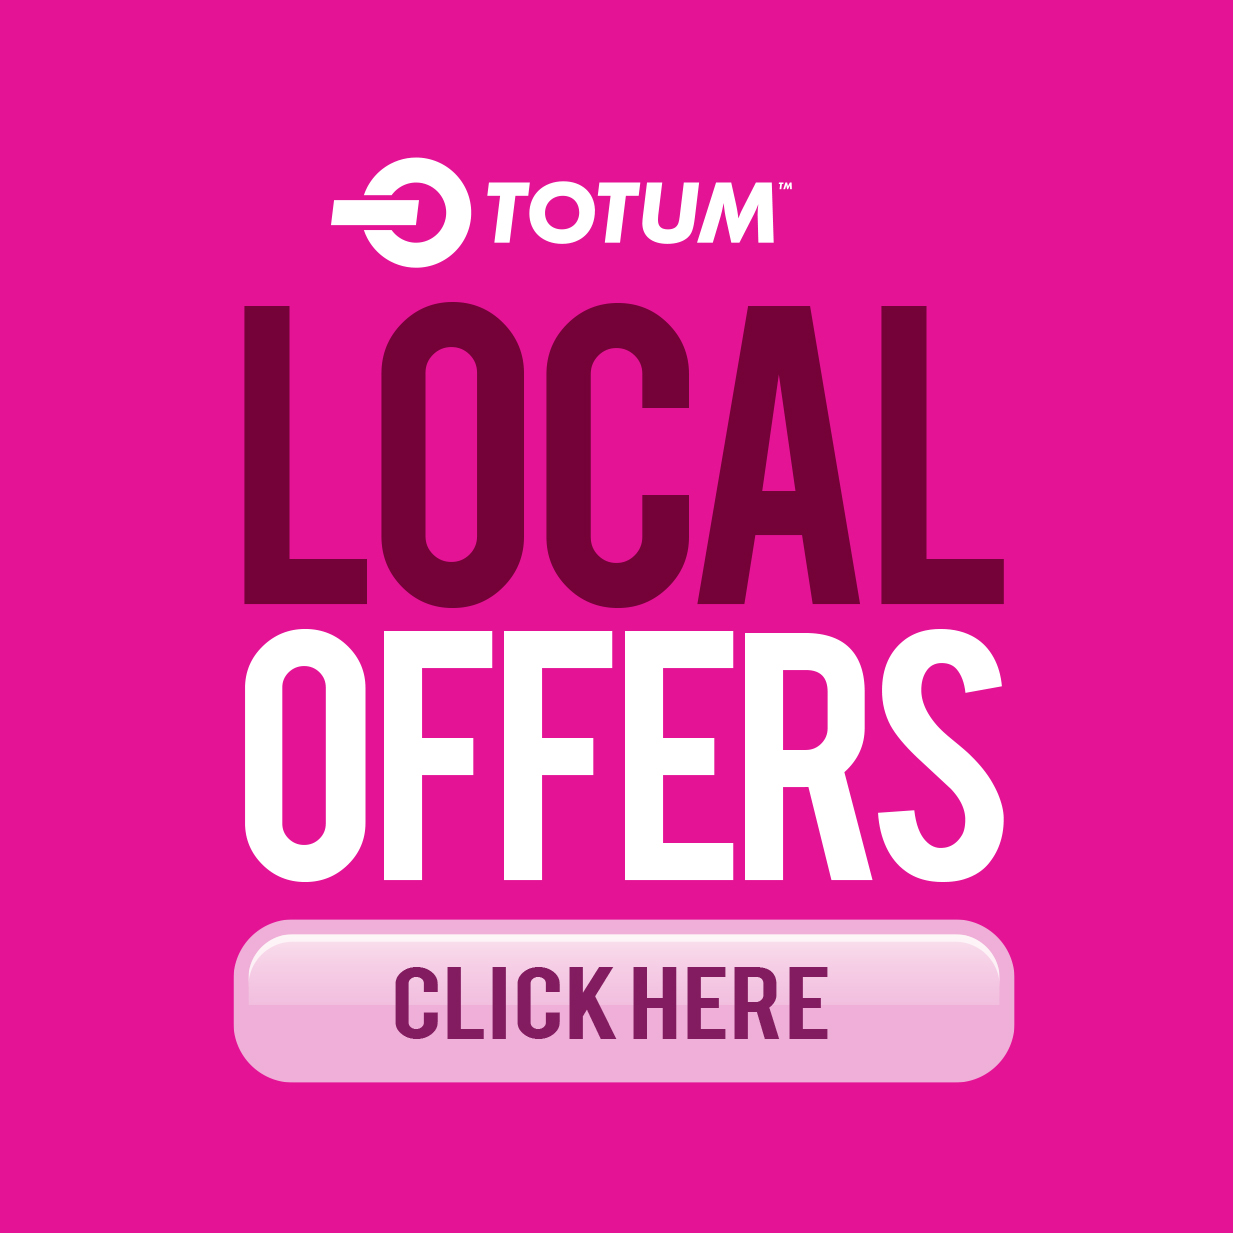 Web Button: TOTUM Local Offers